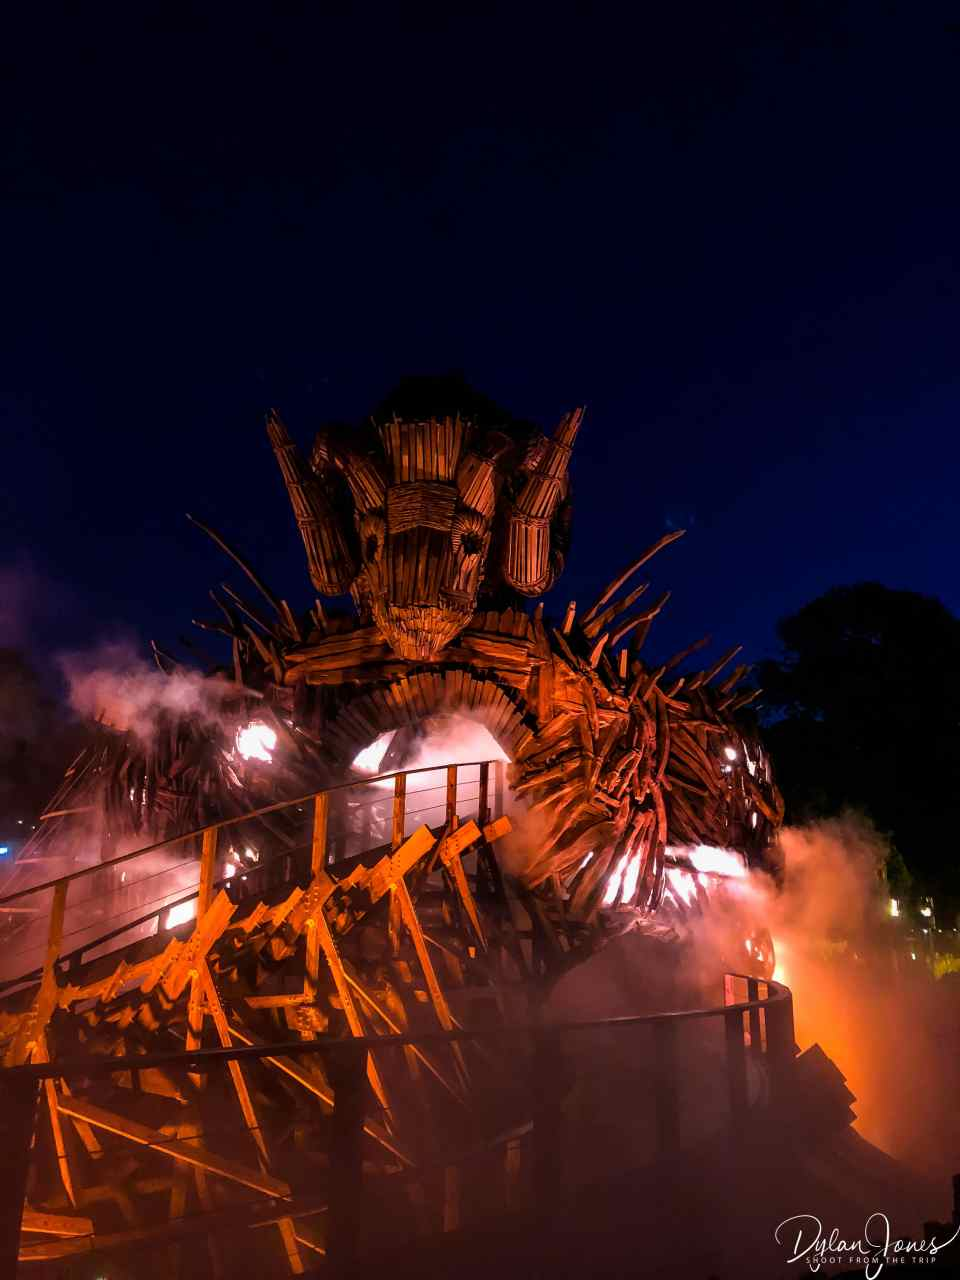 The Wicker Man rollercoaster at night , Alton Towers